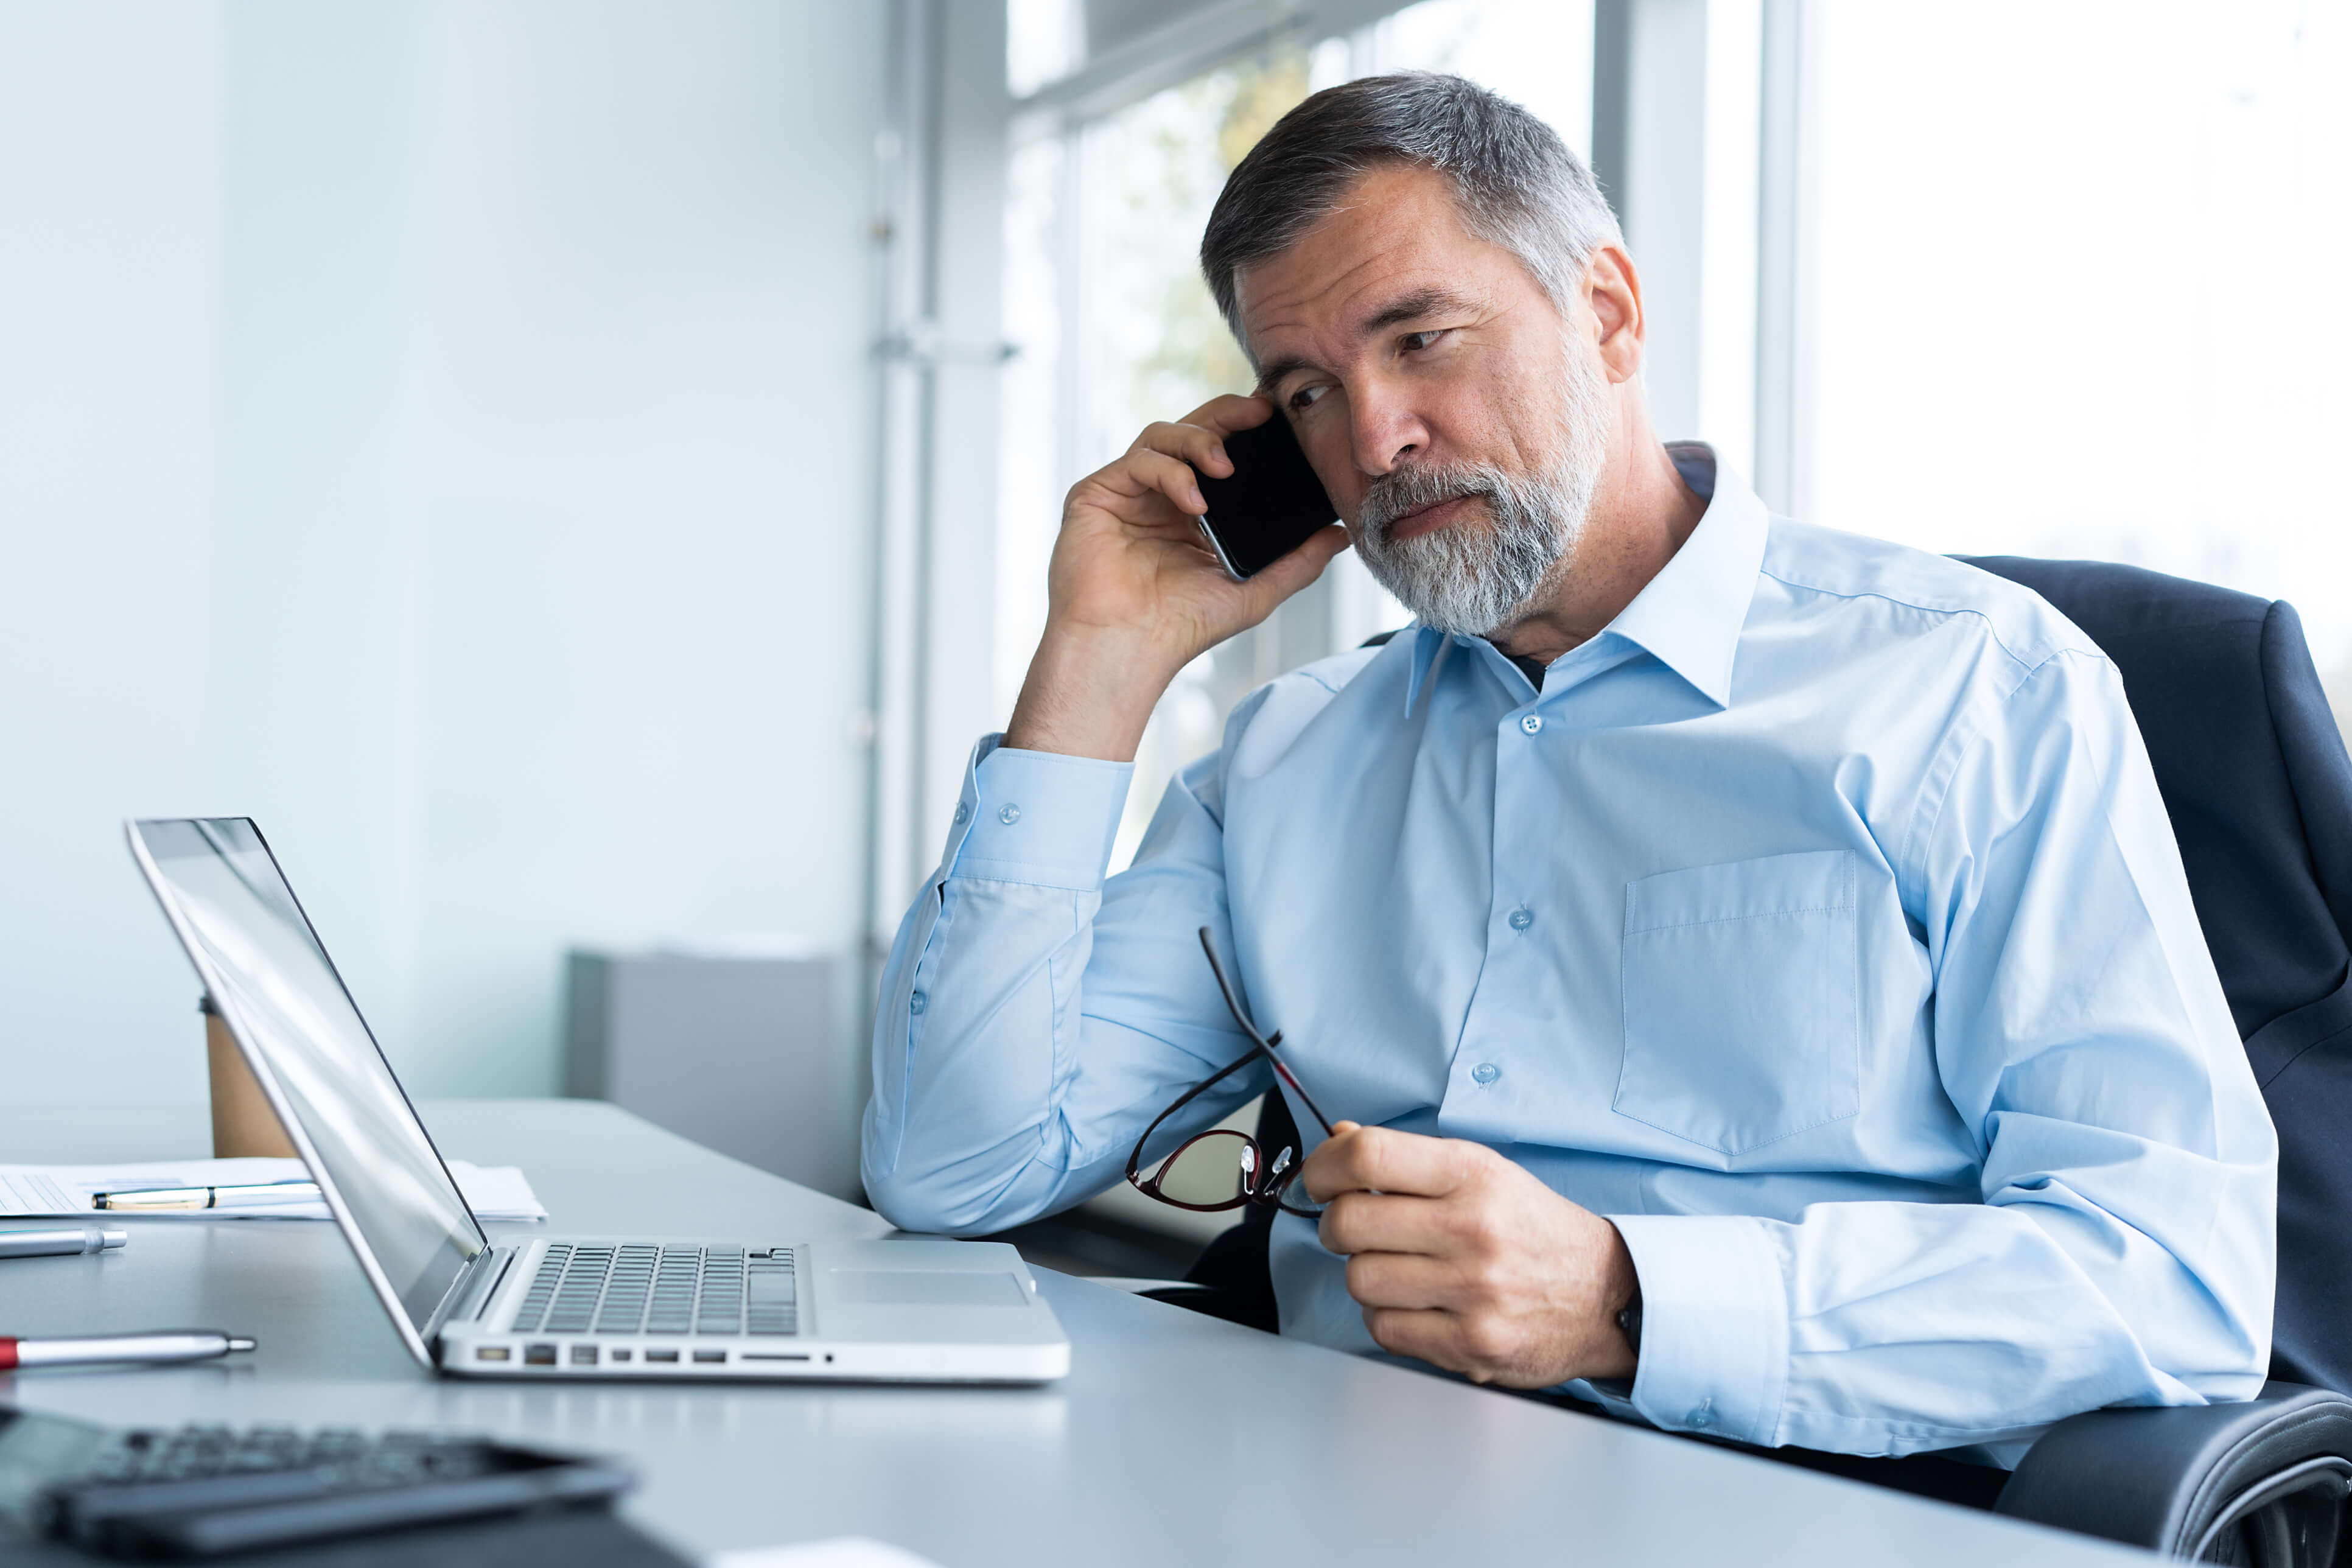 A man working on a laptop while talking in the phone